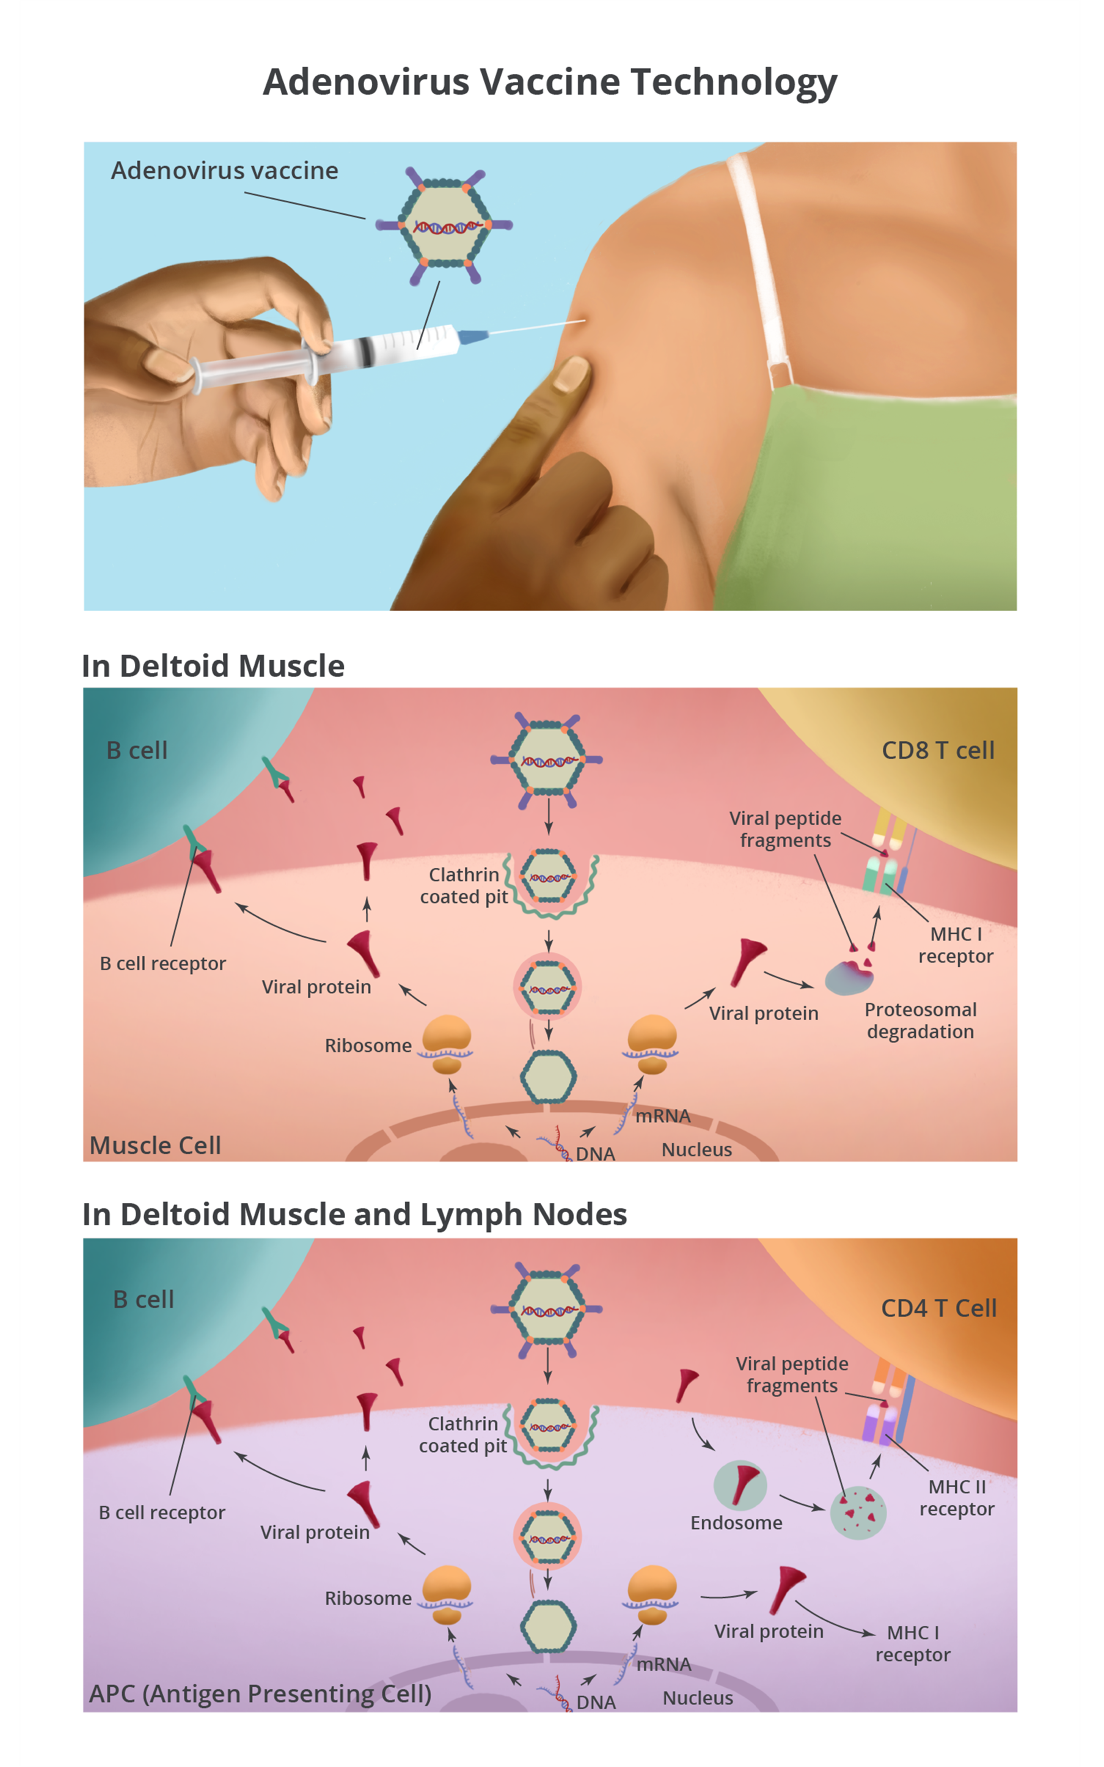 Adenovirus vaccine is injected into the muscle of the upper arm, creating an immune response. The details are described in the paragraphs below.